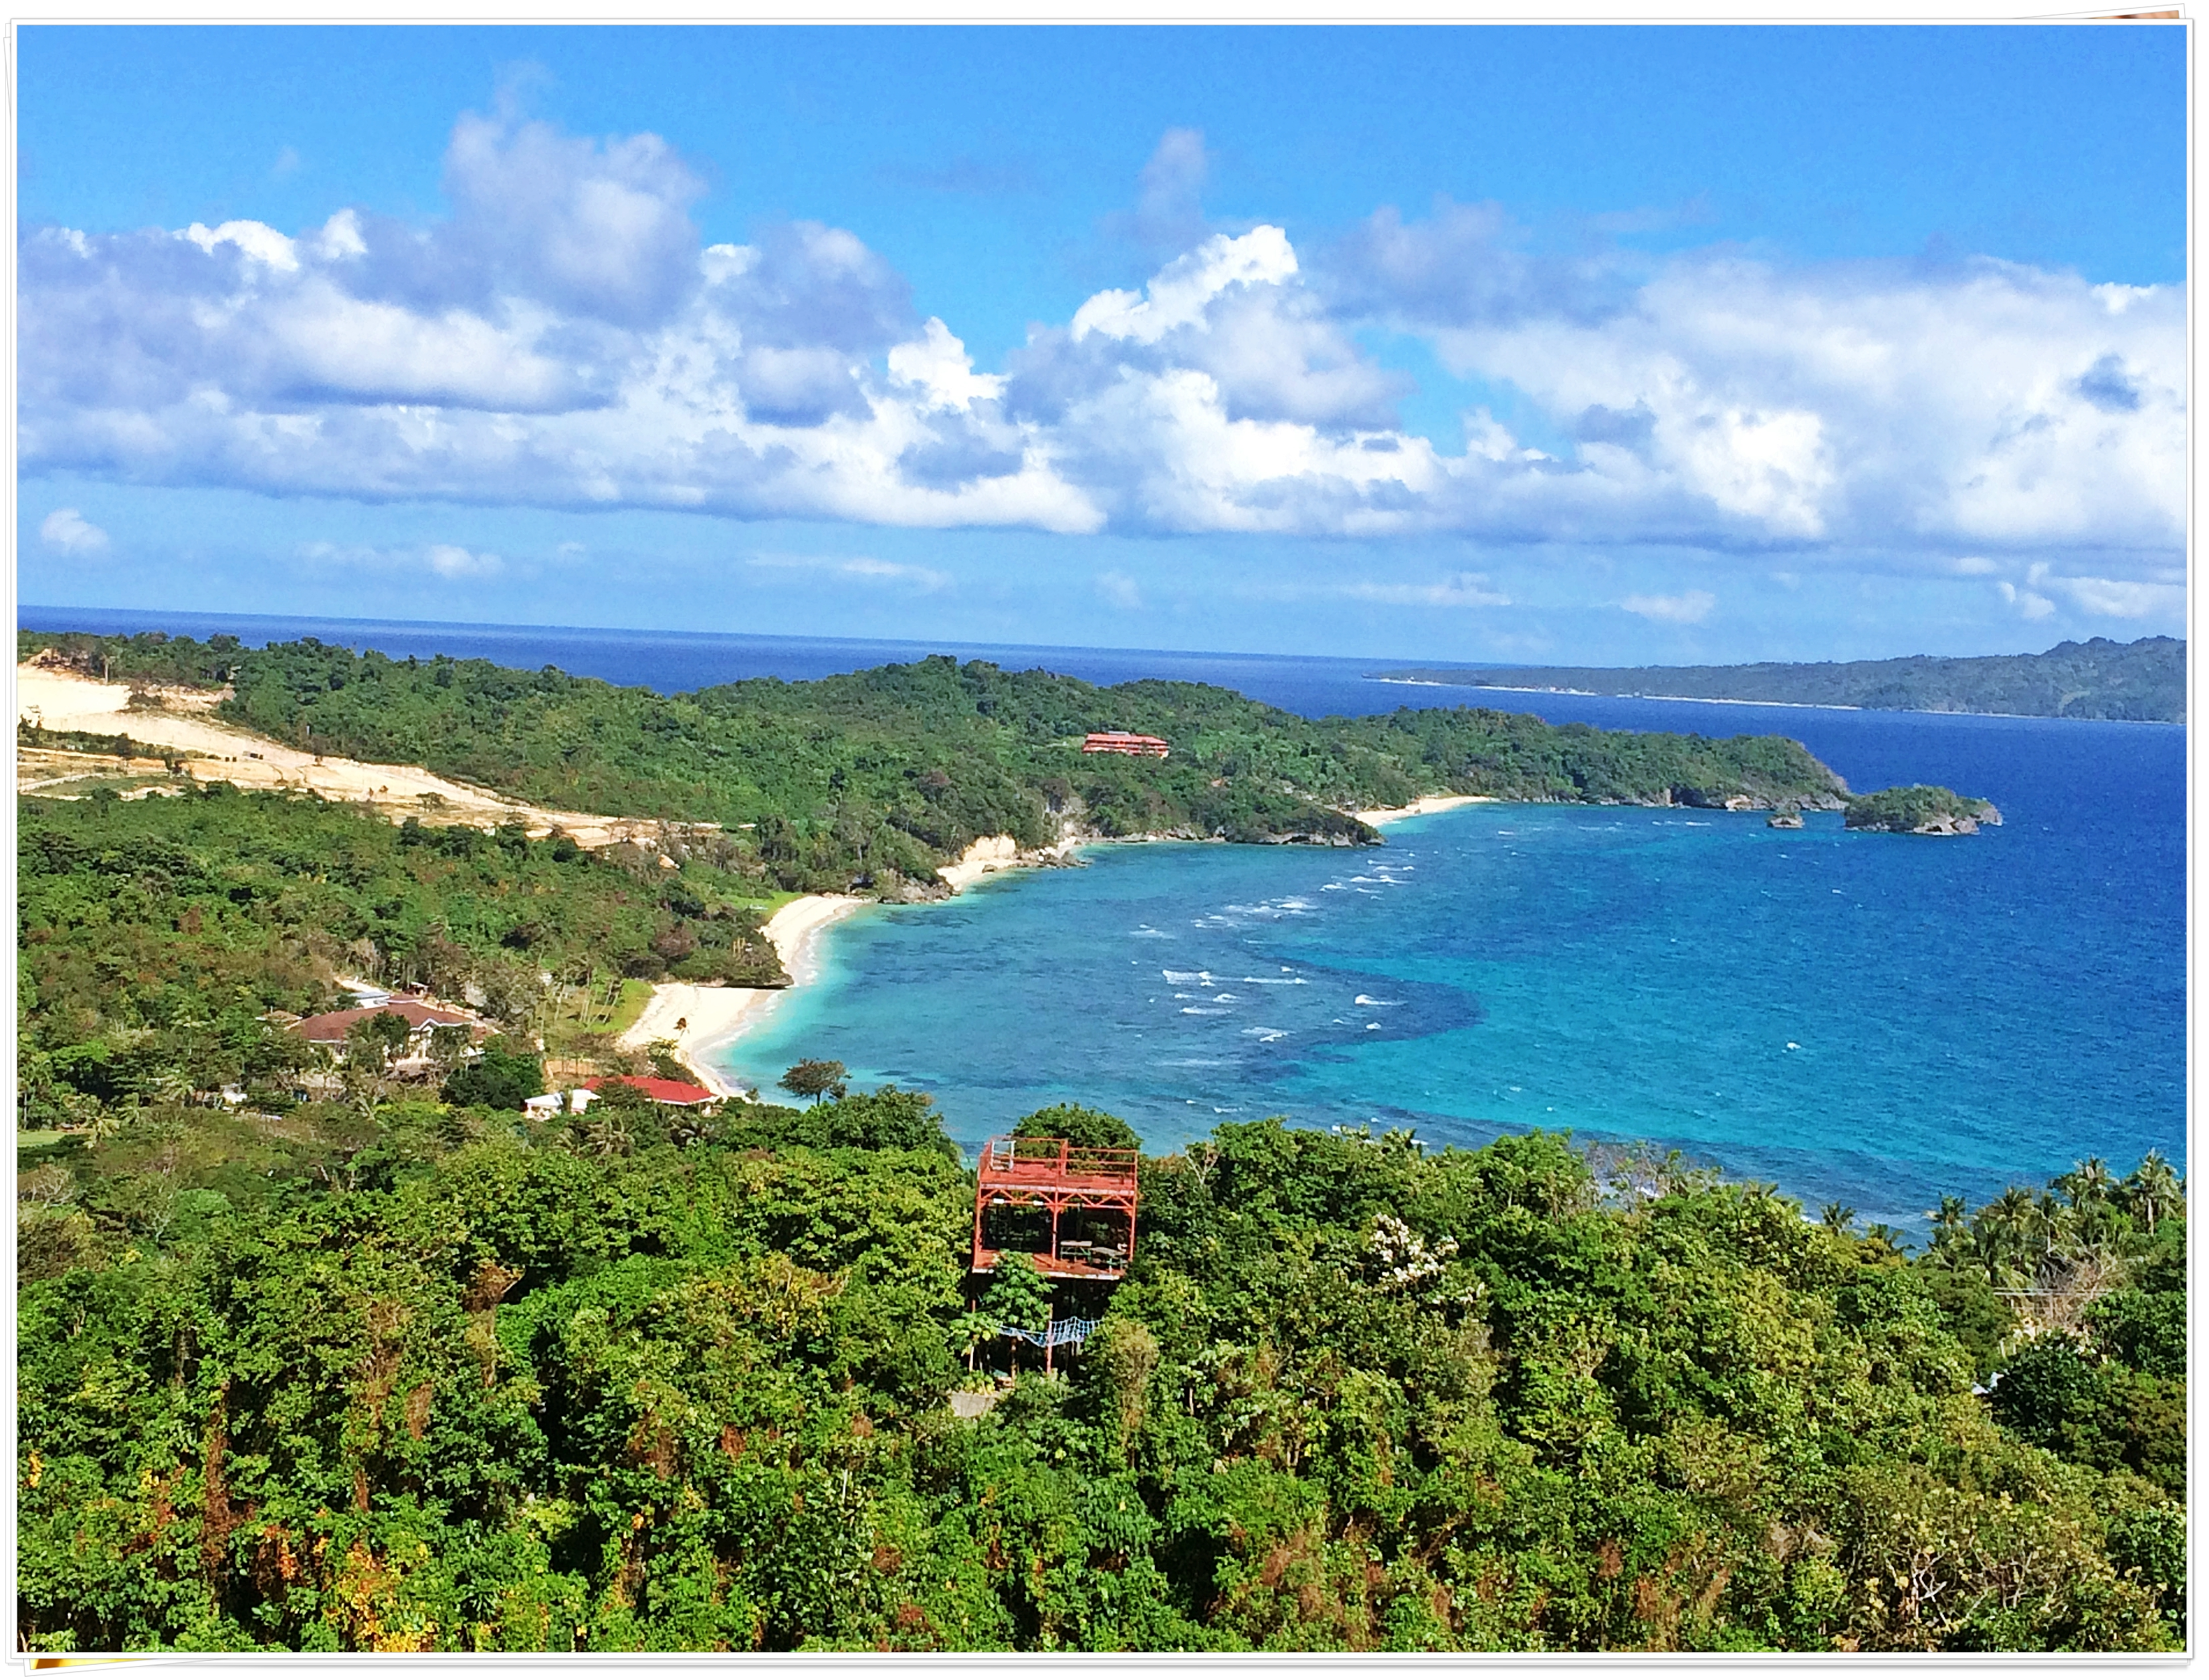 2015 Boracay Aklan Philippines (Mt. Luho Viewpoint)